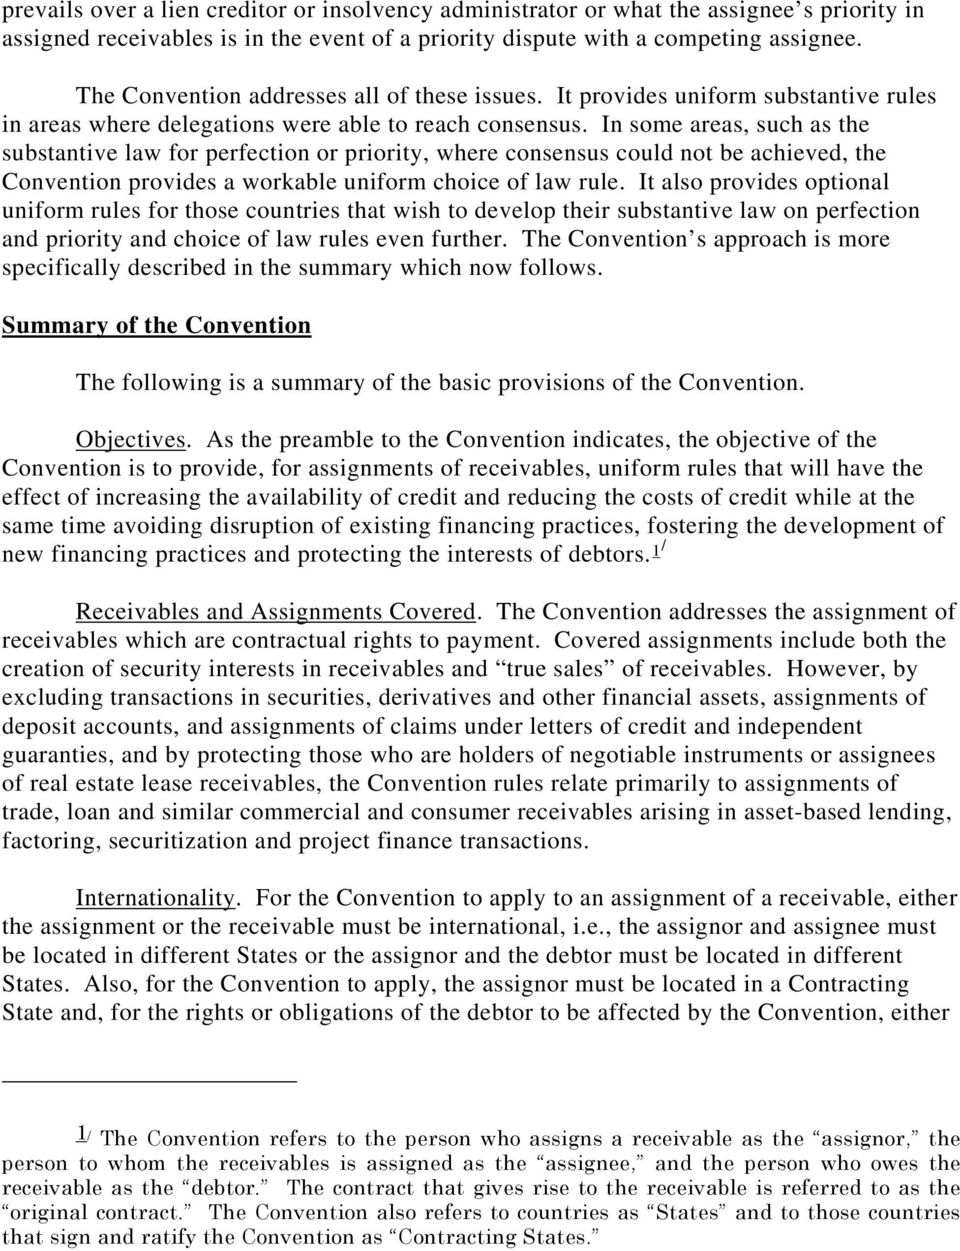 In some areas, such as the substantive law for perfection or priority, where consensus could not be achieved, the Convention provides a workable uniform choice of law rule.